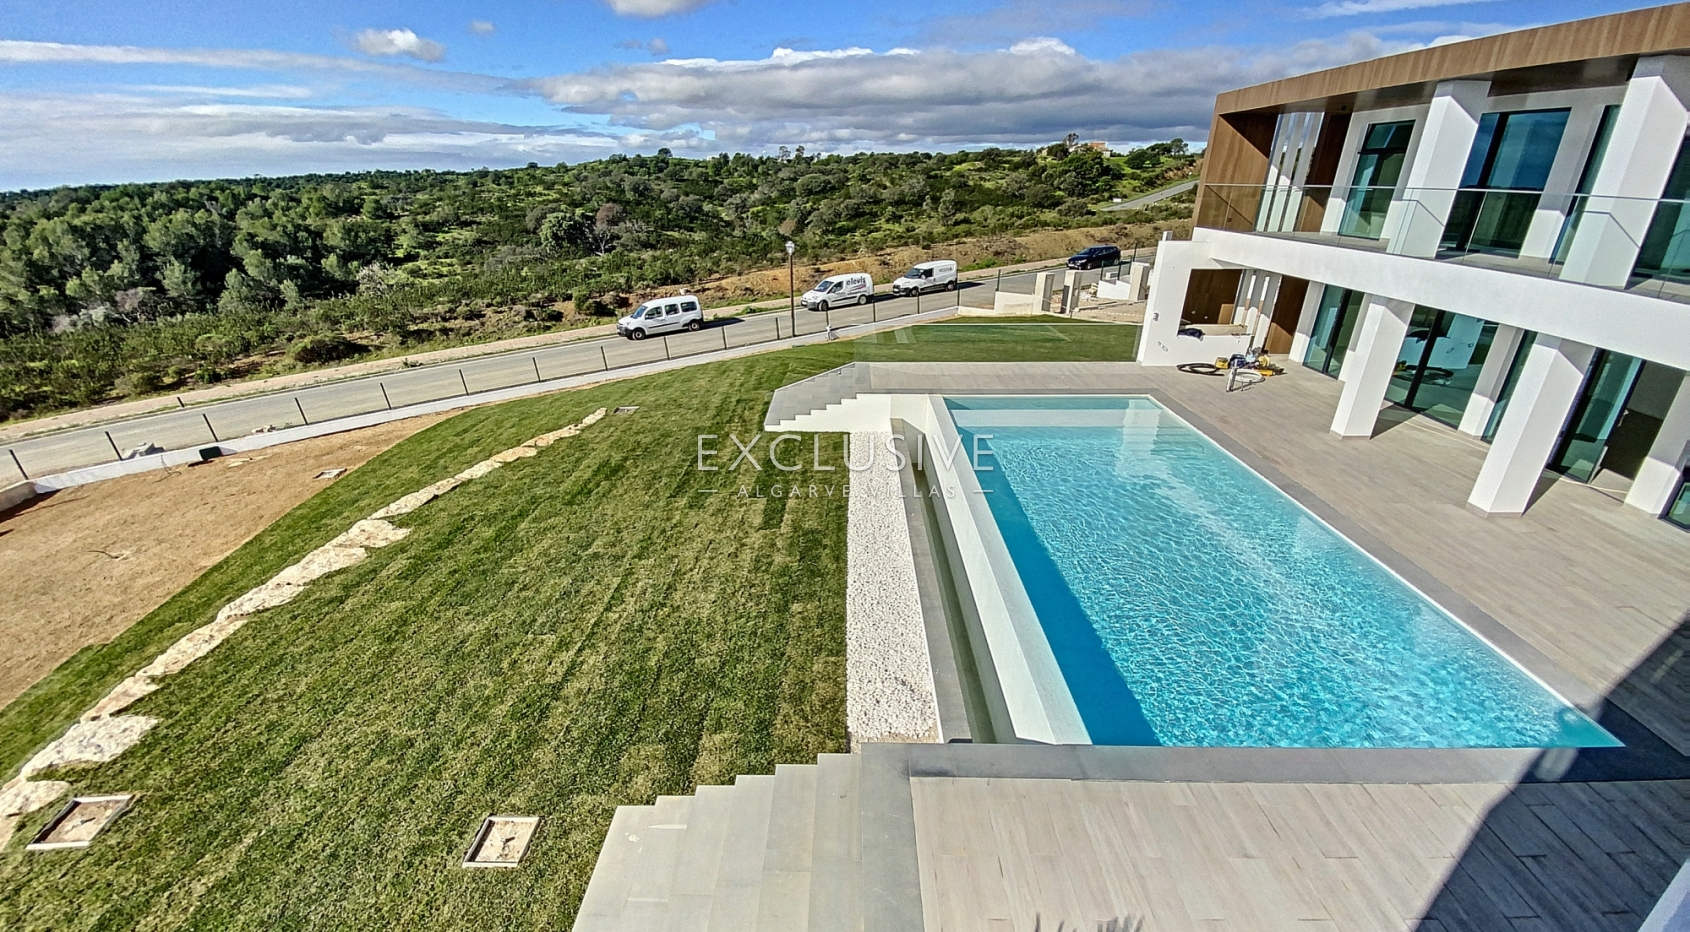 Exclusive Algarve Villas 3222 (47).jpg